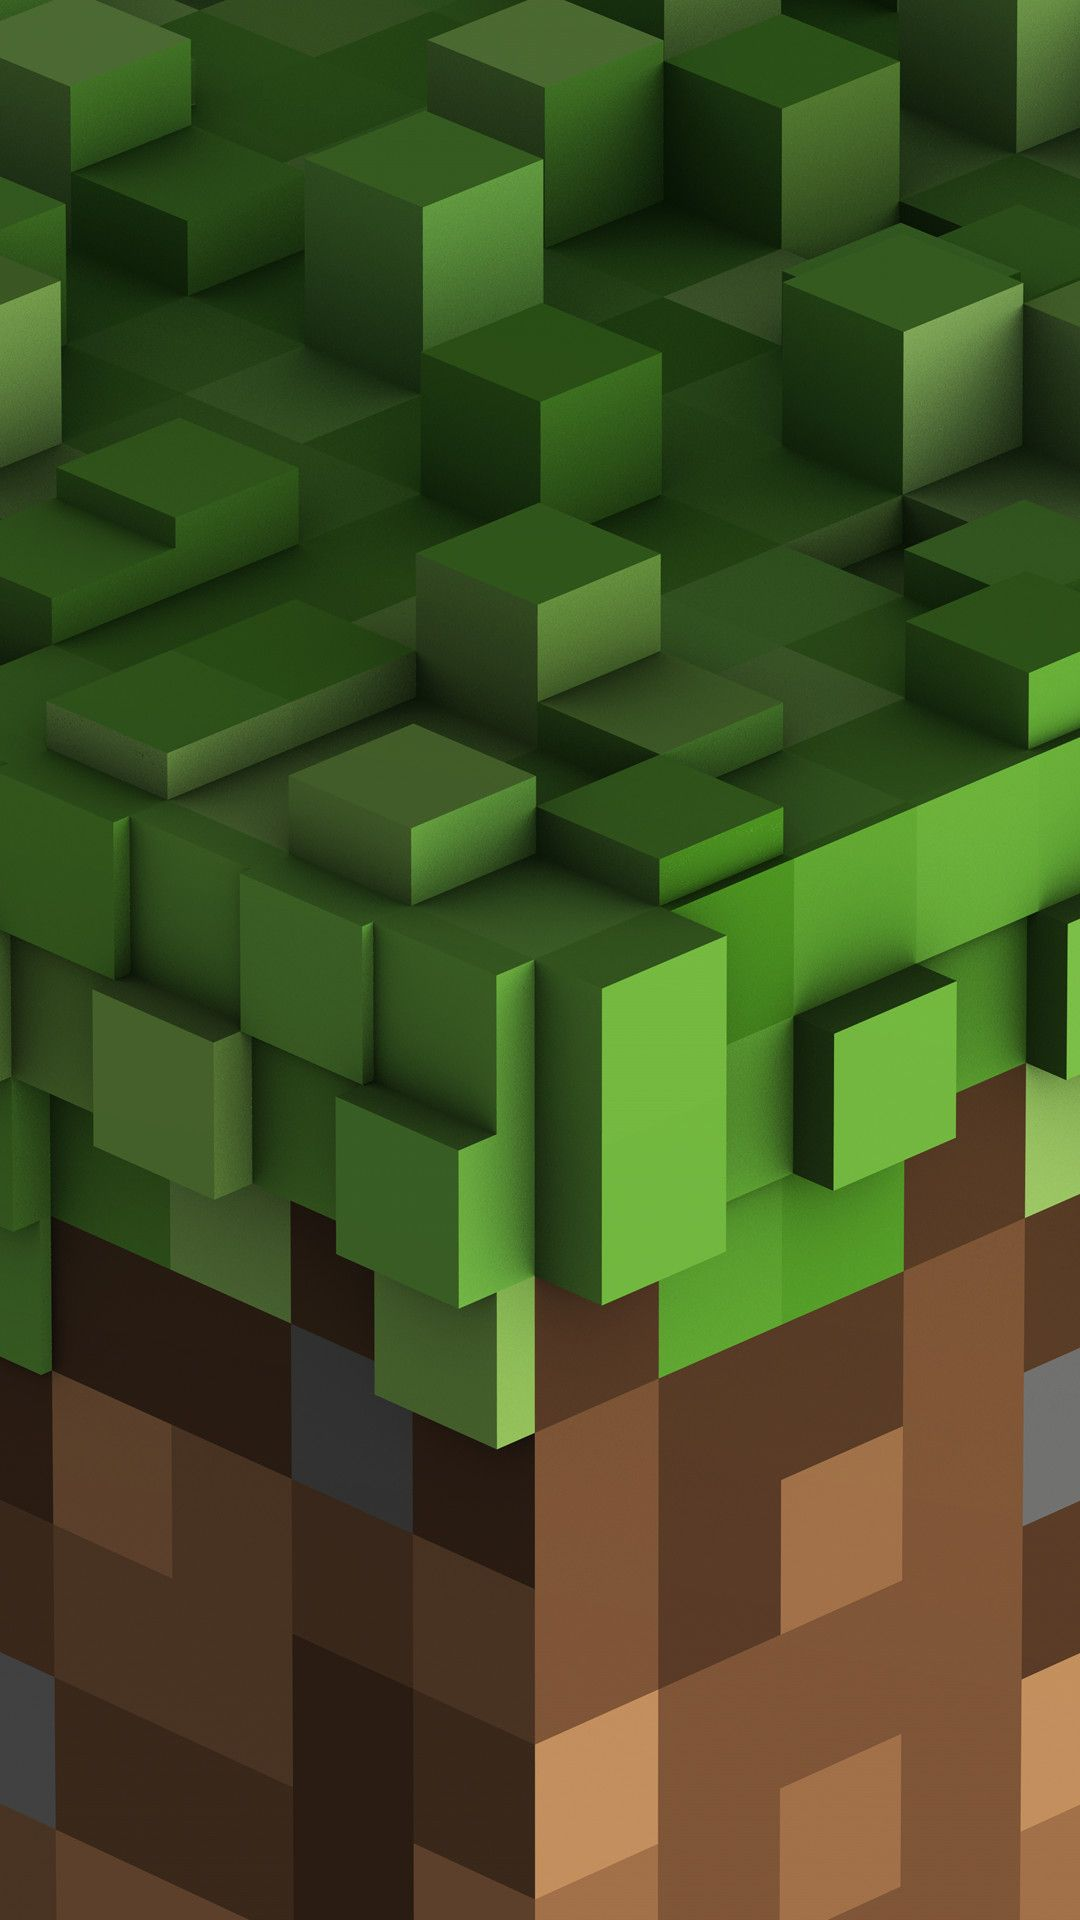 52 Best Free Minecraft iPhone Wallpapers - WallpaperAccess